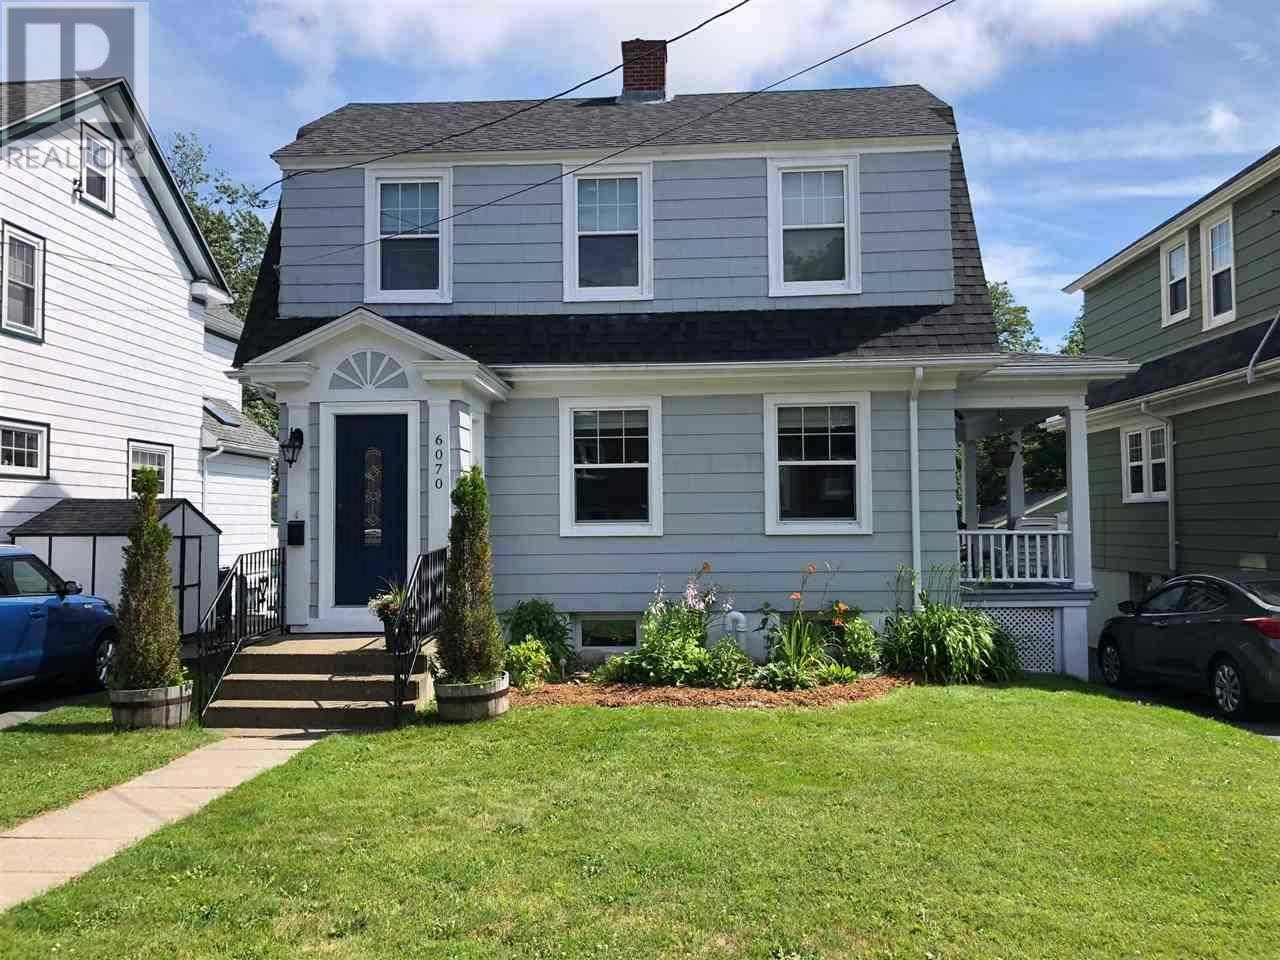 House for sale at 6070 Shirley St S Halifax Nova Scotia - MLS: 201925504